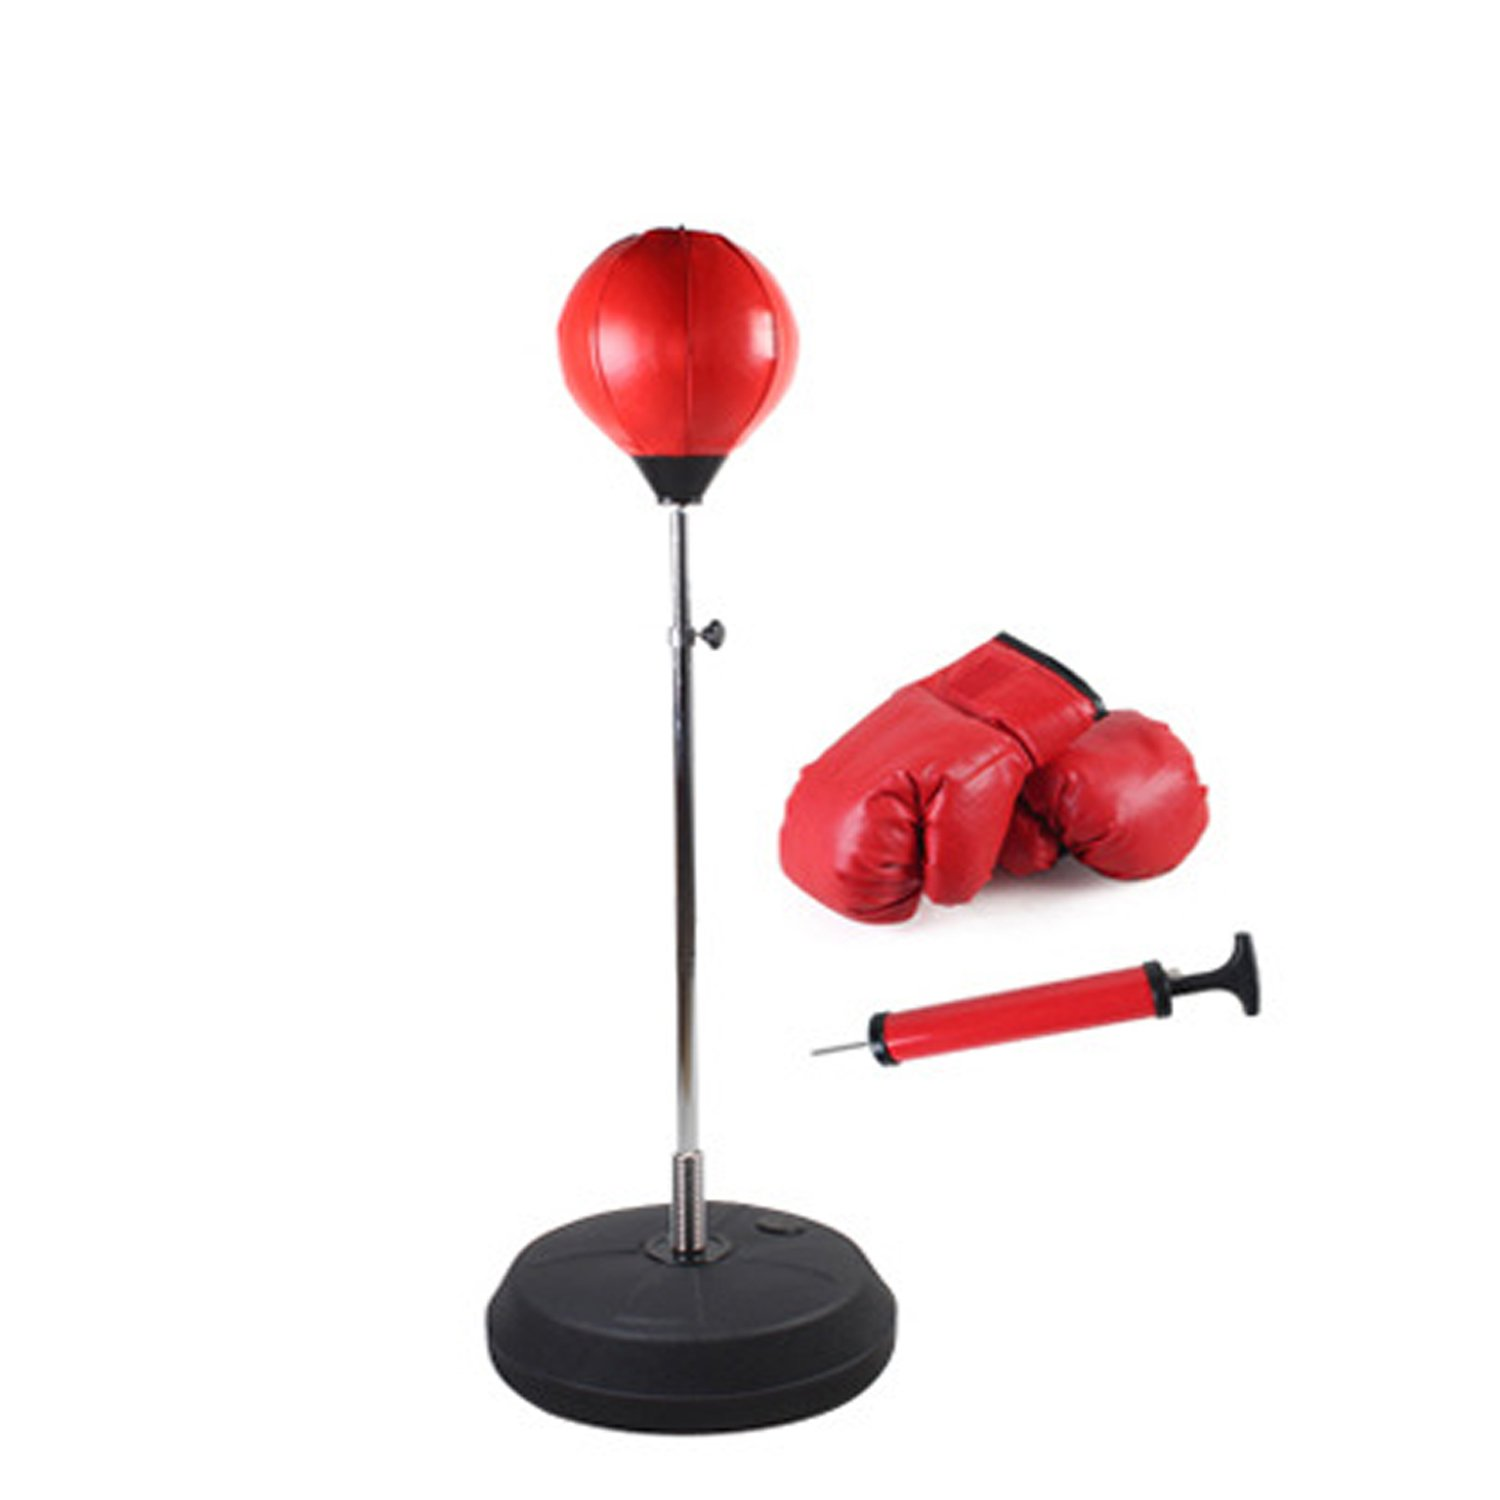 Iume Punching Boxing Ball with Stand 47 B07BKXF6FN and Punching GlovesポンプFull Set For Kids高さ調節可能な垂直35